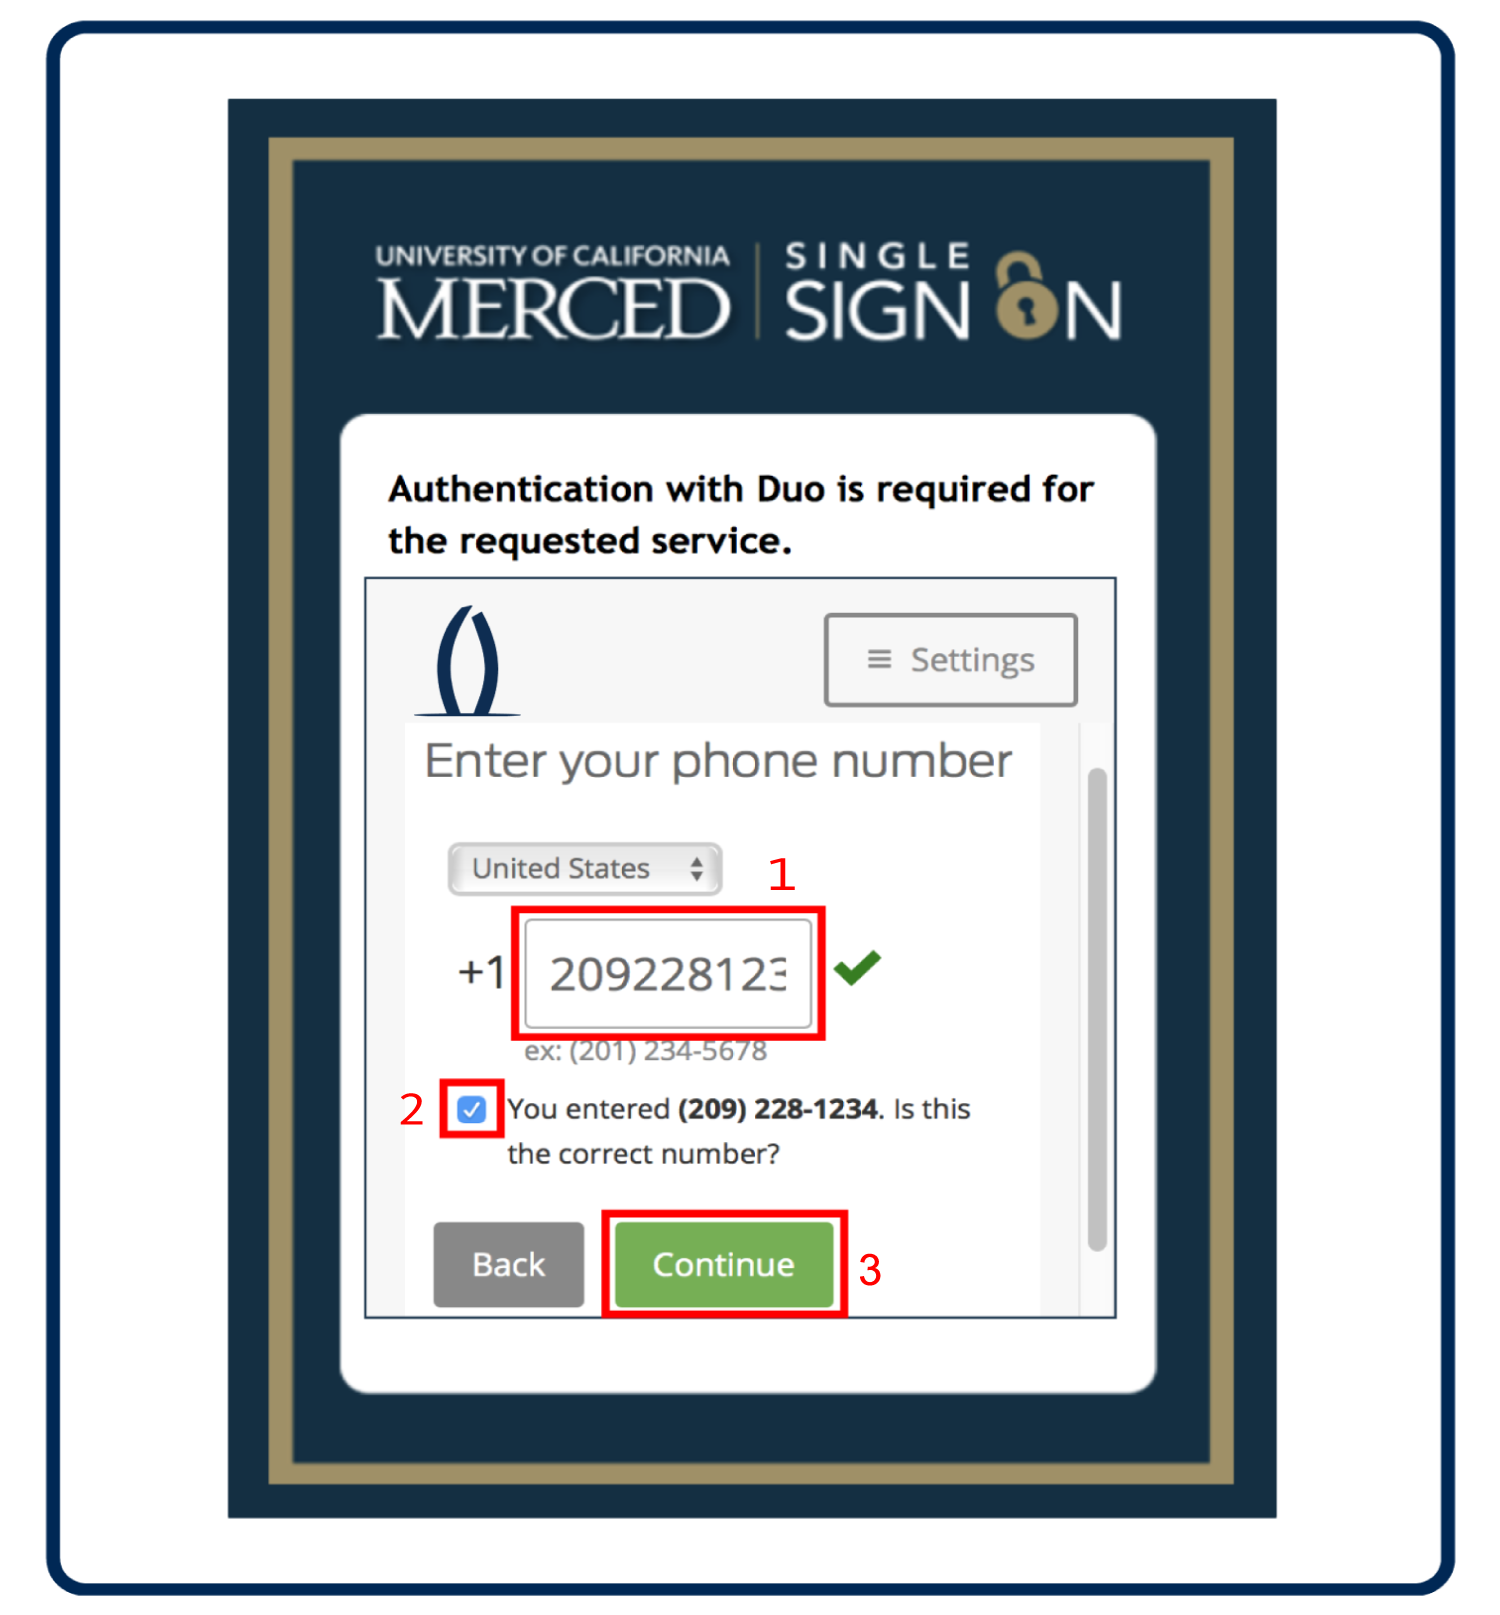 Enter your mobile phone number, verify your number is correct, click the check box, and click Continue.